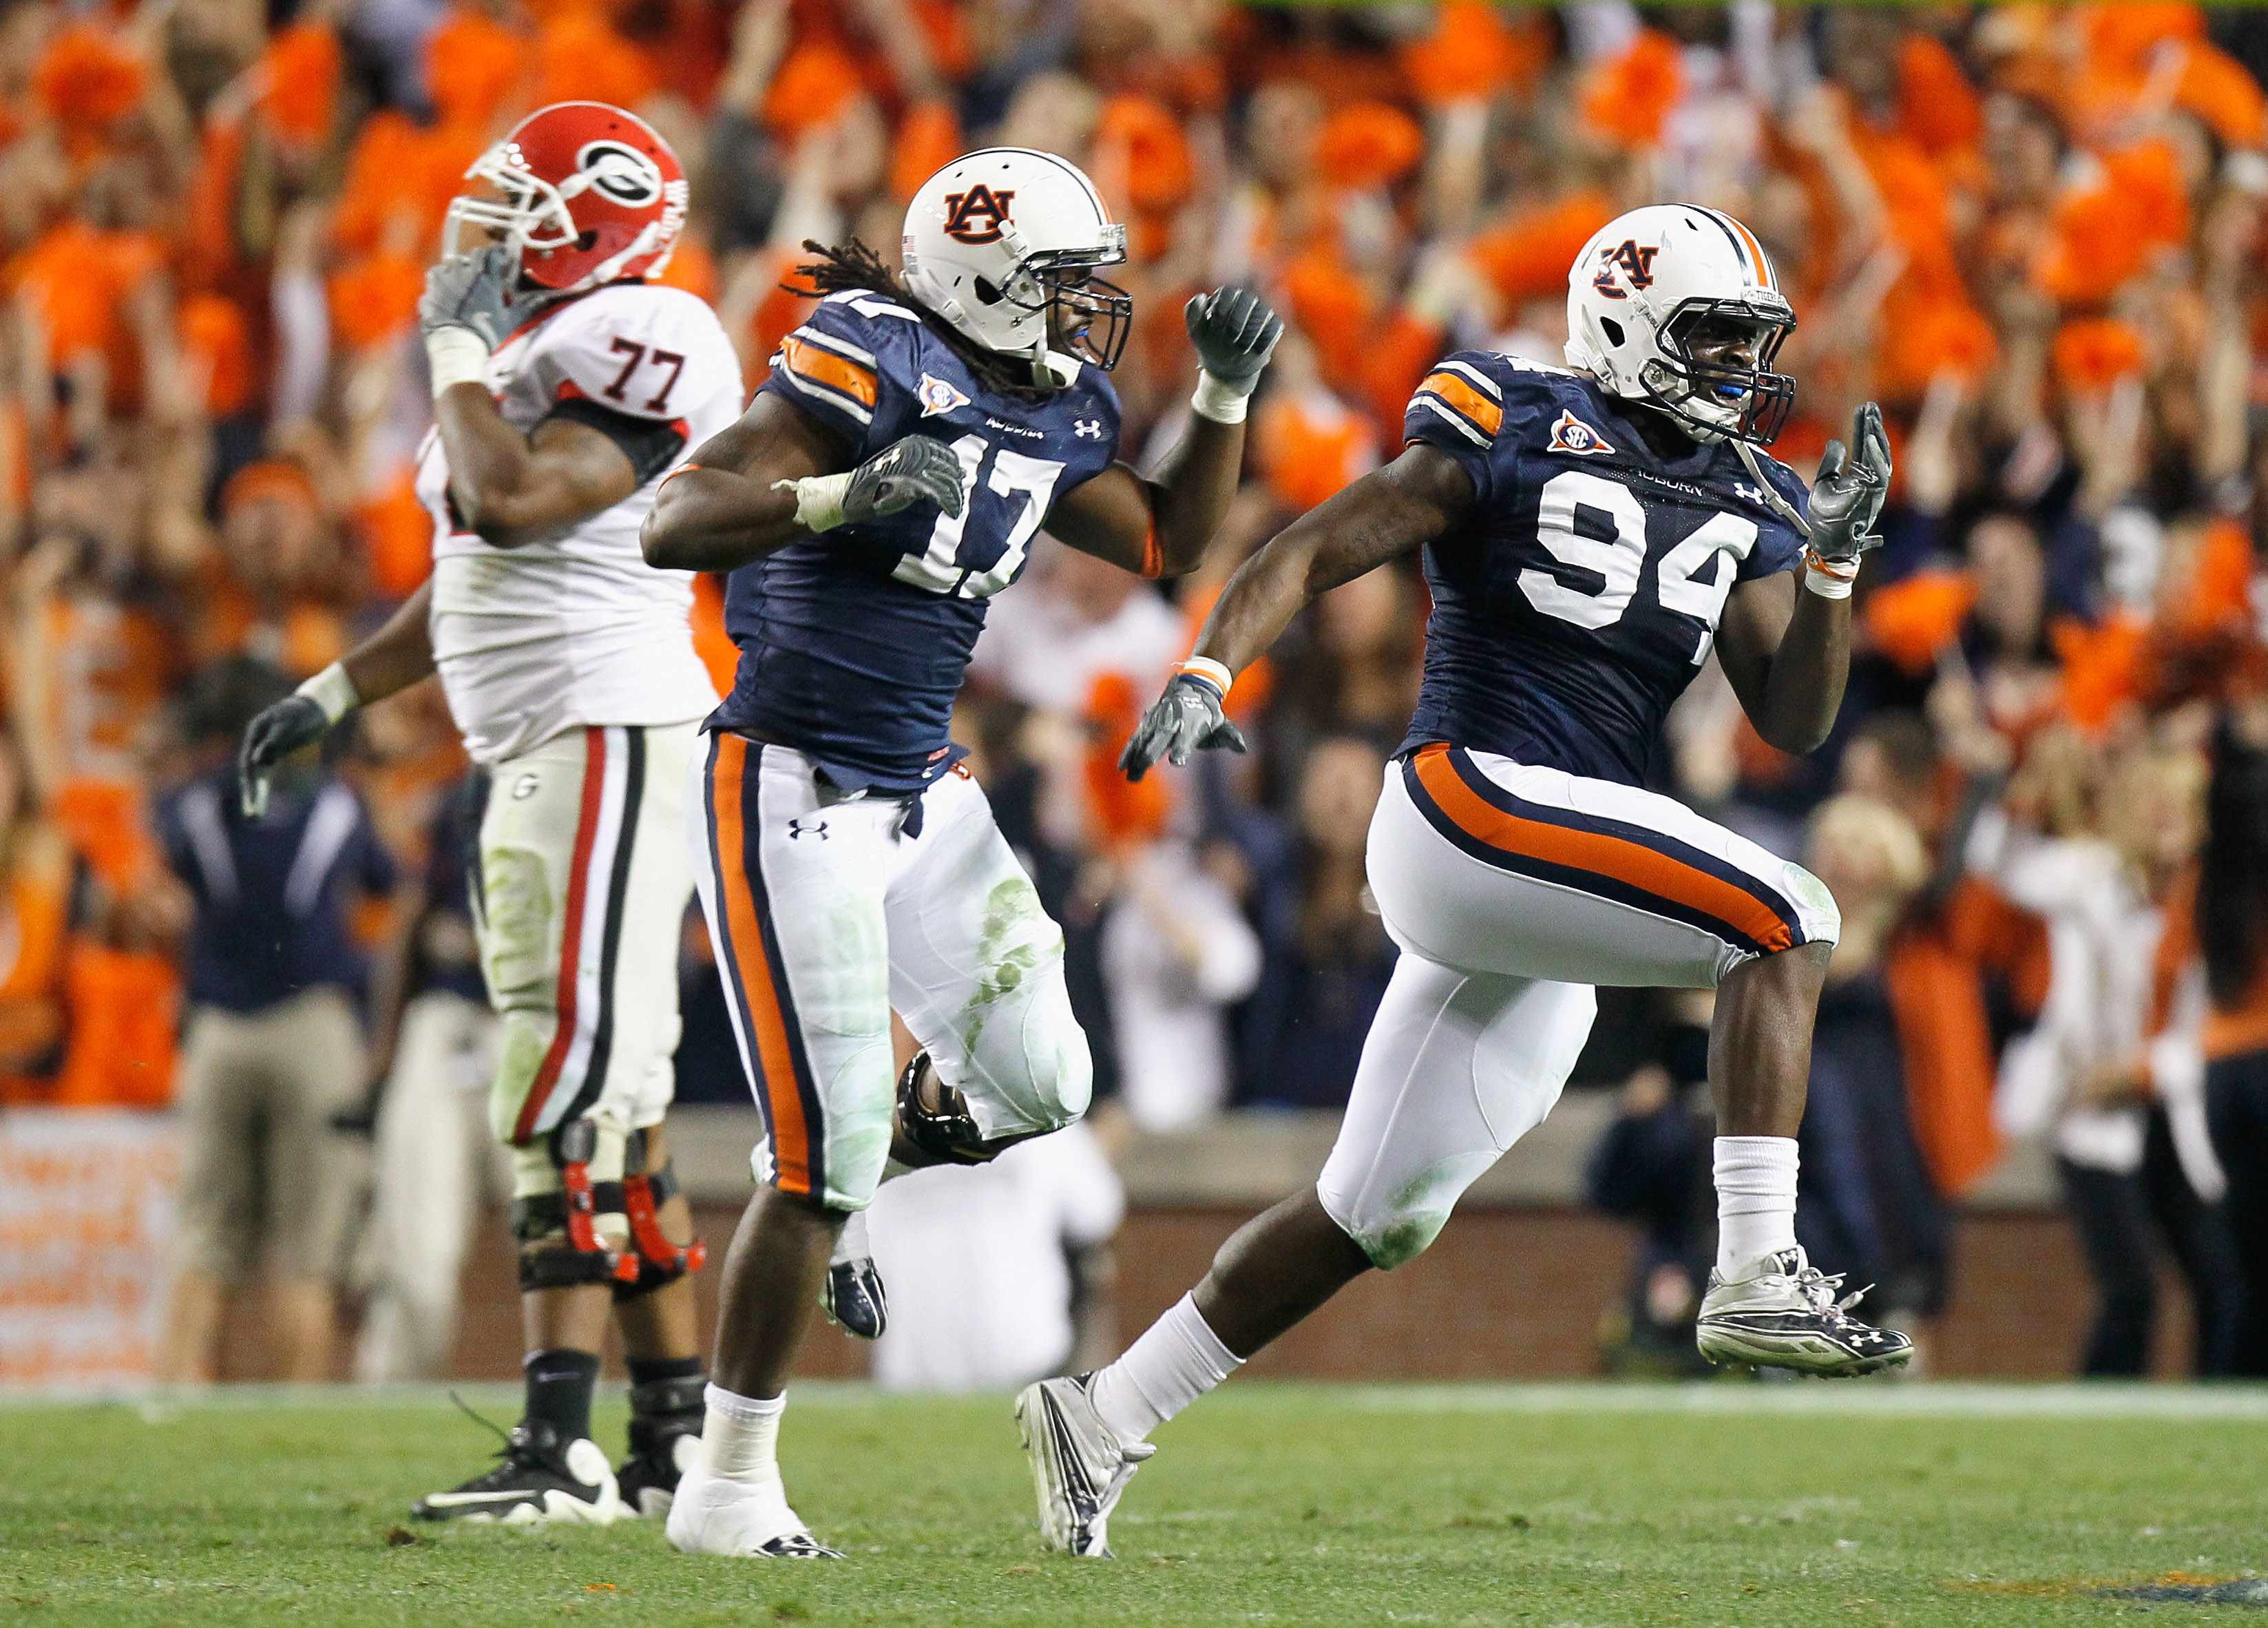 AUBURN, AL - NOVEMBER 13:  Nosa Eguae #94 and Josh Bynes #17 of the Auburn Tigers react after a defensive stop of fourth down for the Georgia Bulldogs at Jordan-Hare Stadium on November 13, 2010 in Auburn, Alabama.  (Photo by Kevin C. Cox/Getty Images)